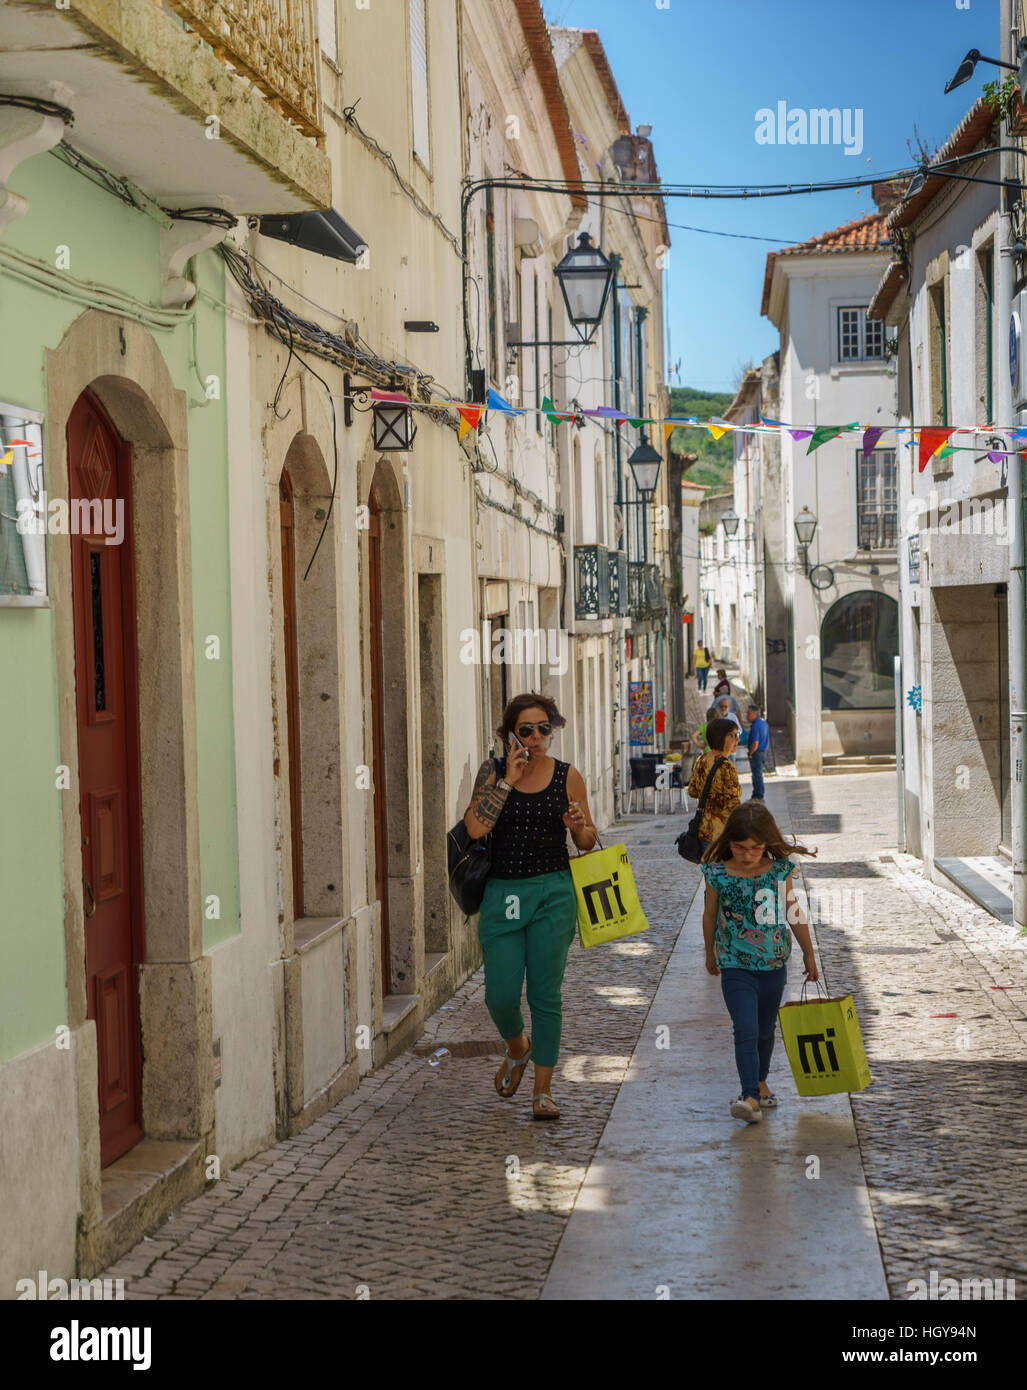 Shoppers carrying bags in the narrow cobblestone streets of Torres Vedras Portugal - Stock Image